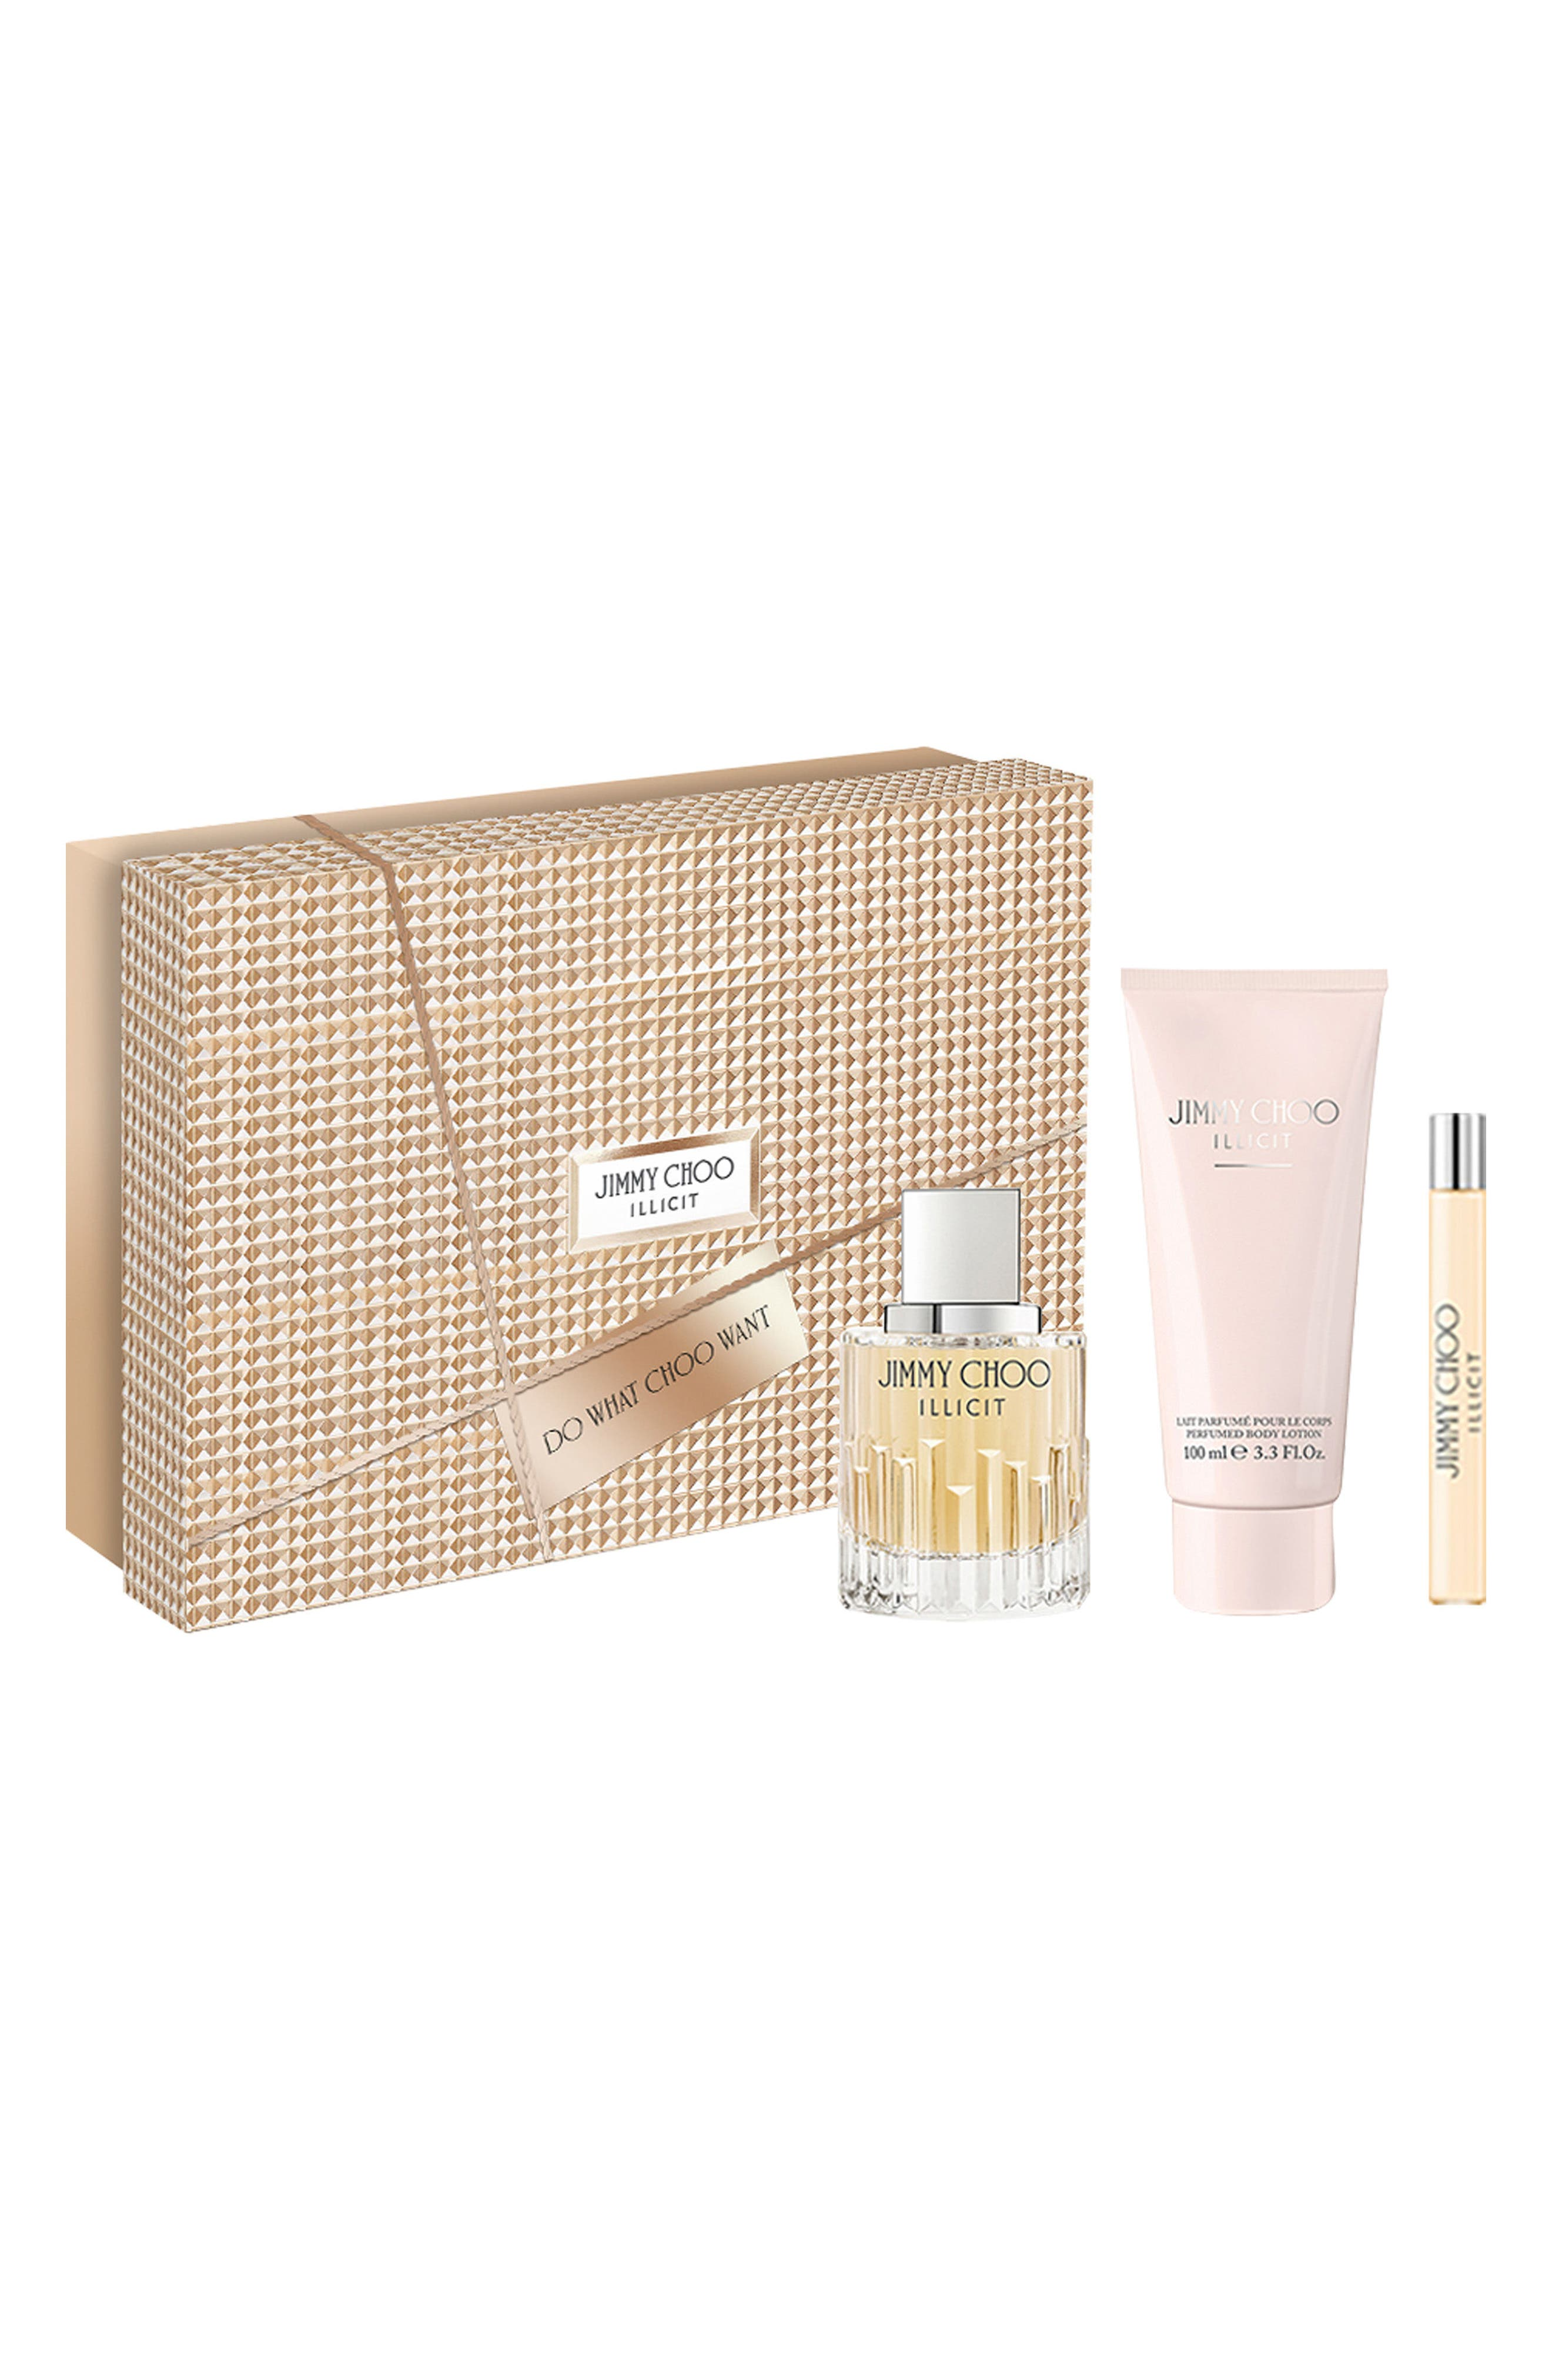 Alternate Image 1 Selected - Jimmy Choo Illicit Set (Limited Edition)